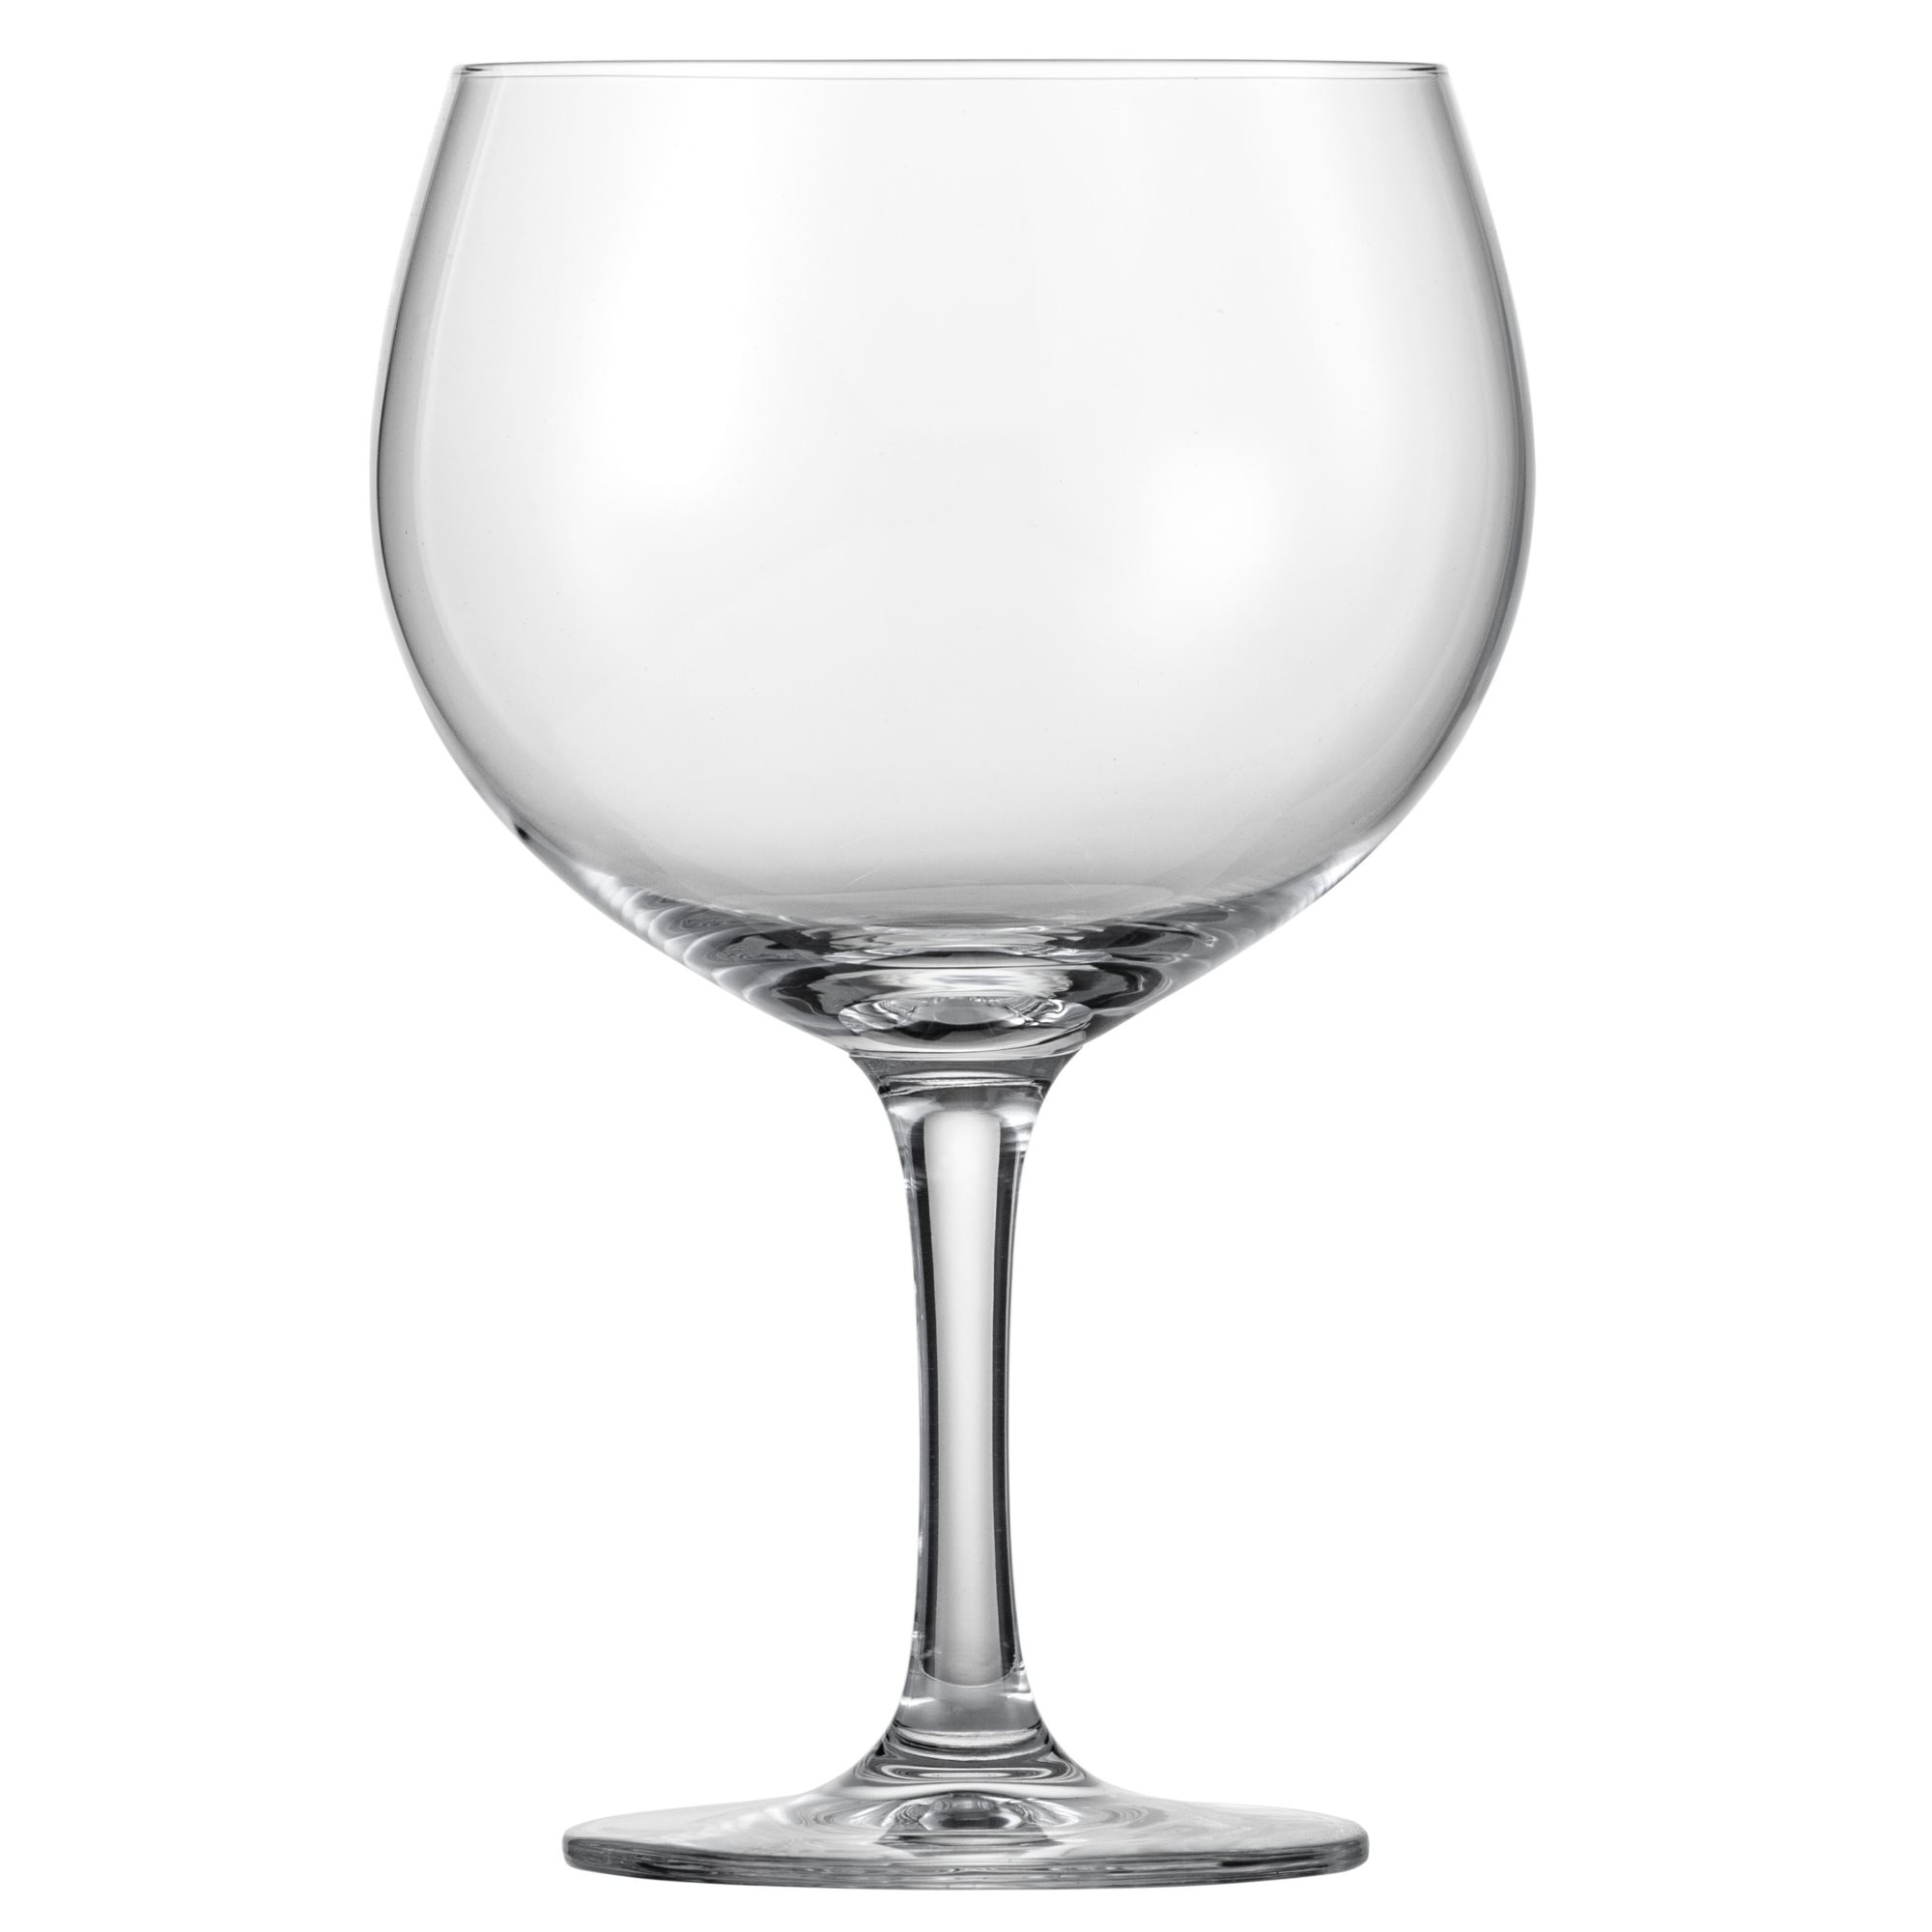 Schott Zwiesel Wine Glasses | Fortessa Flatware Outlet | Tritan Glasses